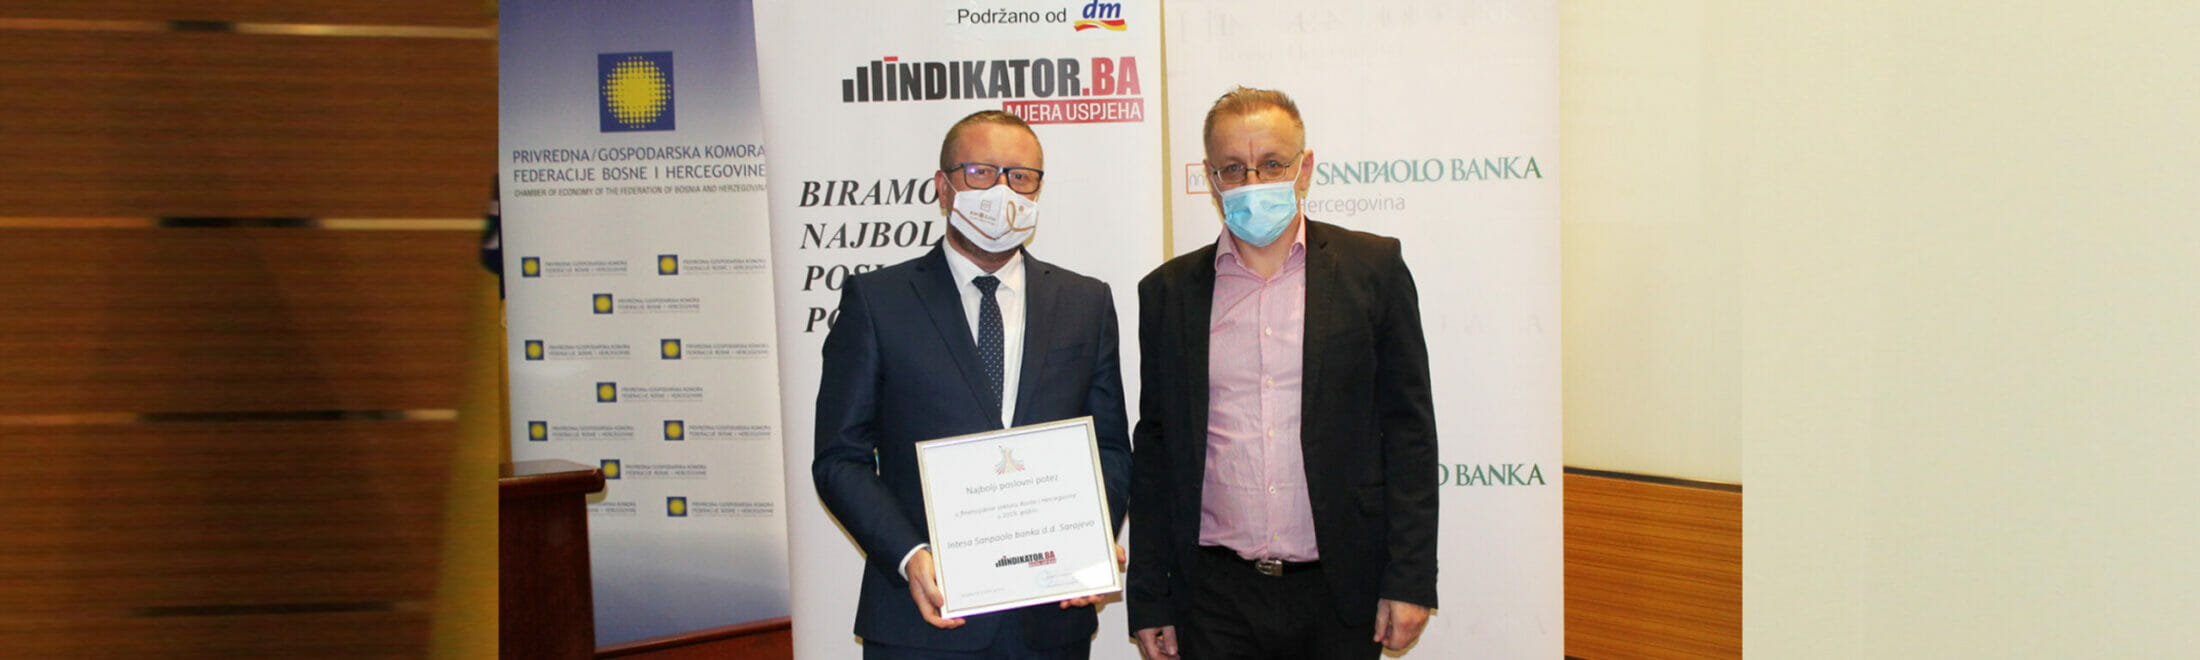 Web portal Indikator.ba awards Intesa Sanpaolo Banka for the best business move in the financial sector